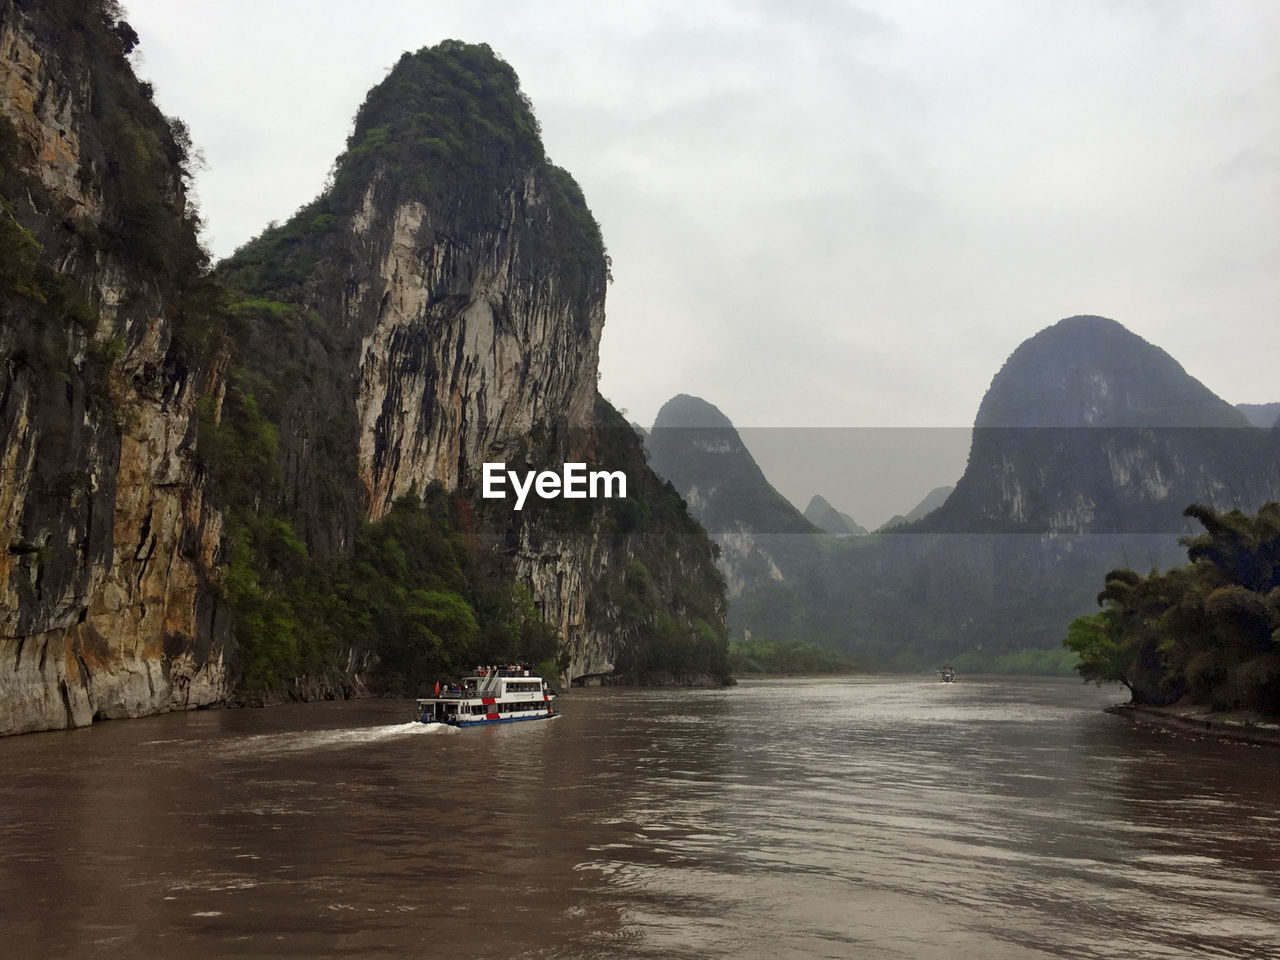 SCENIC VIEW OF RIVER WITH MOUNTAINS IN BACKGROUND